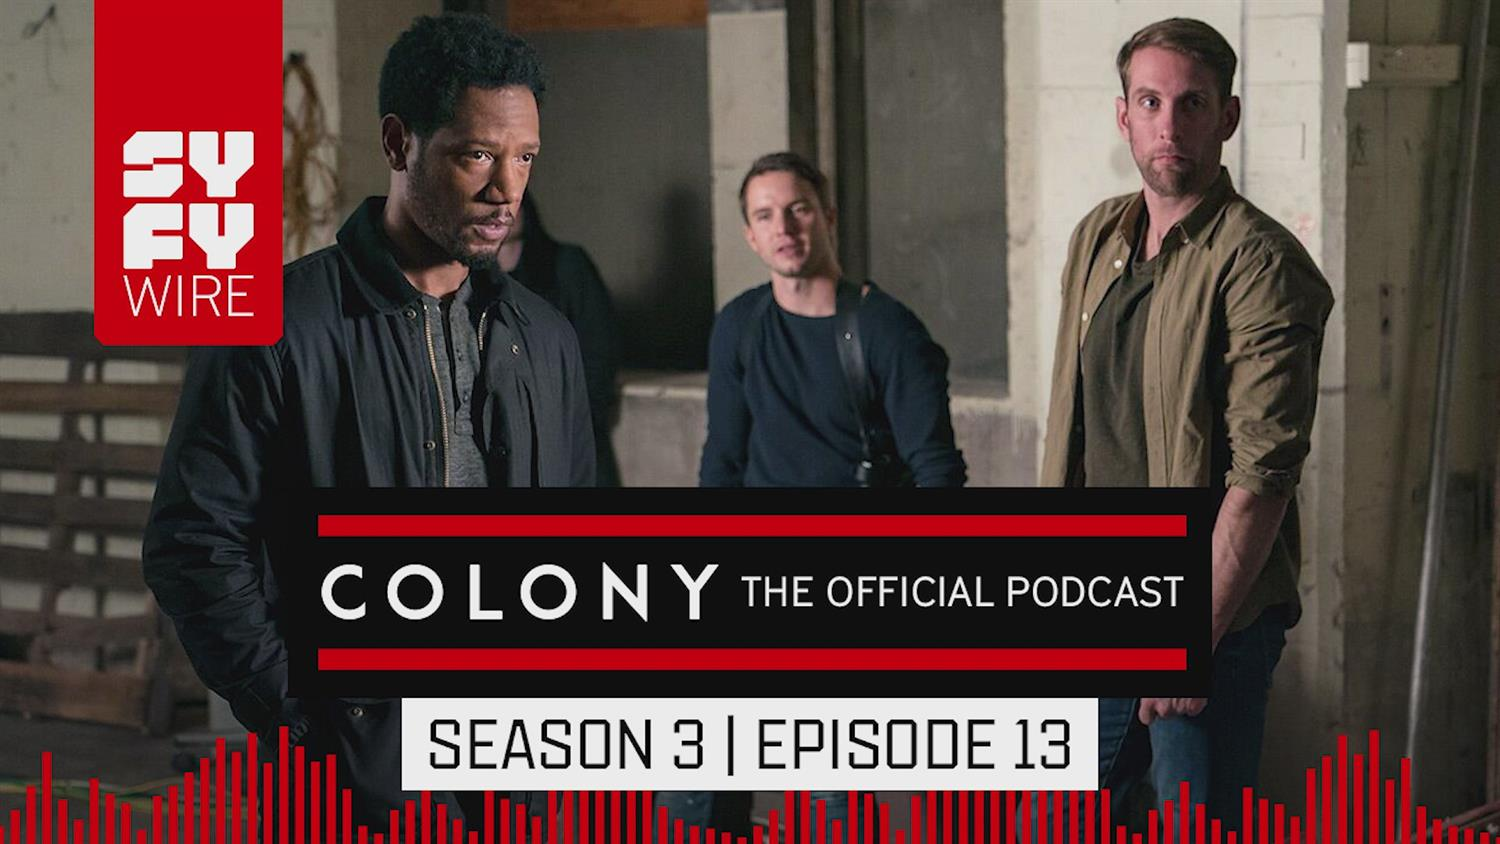 Colony The Official Podcast: Season 3, Episode 13